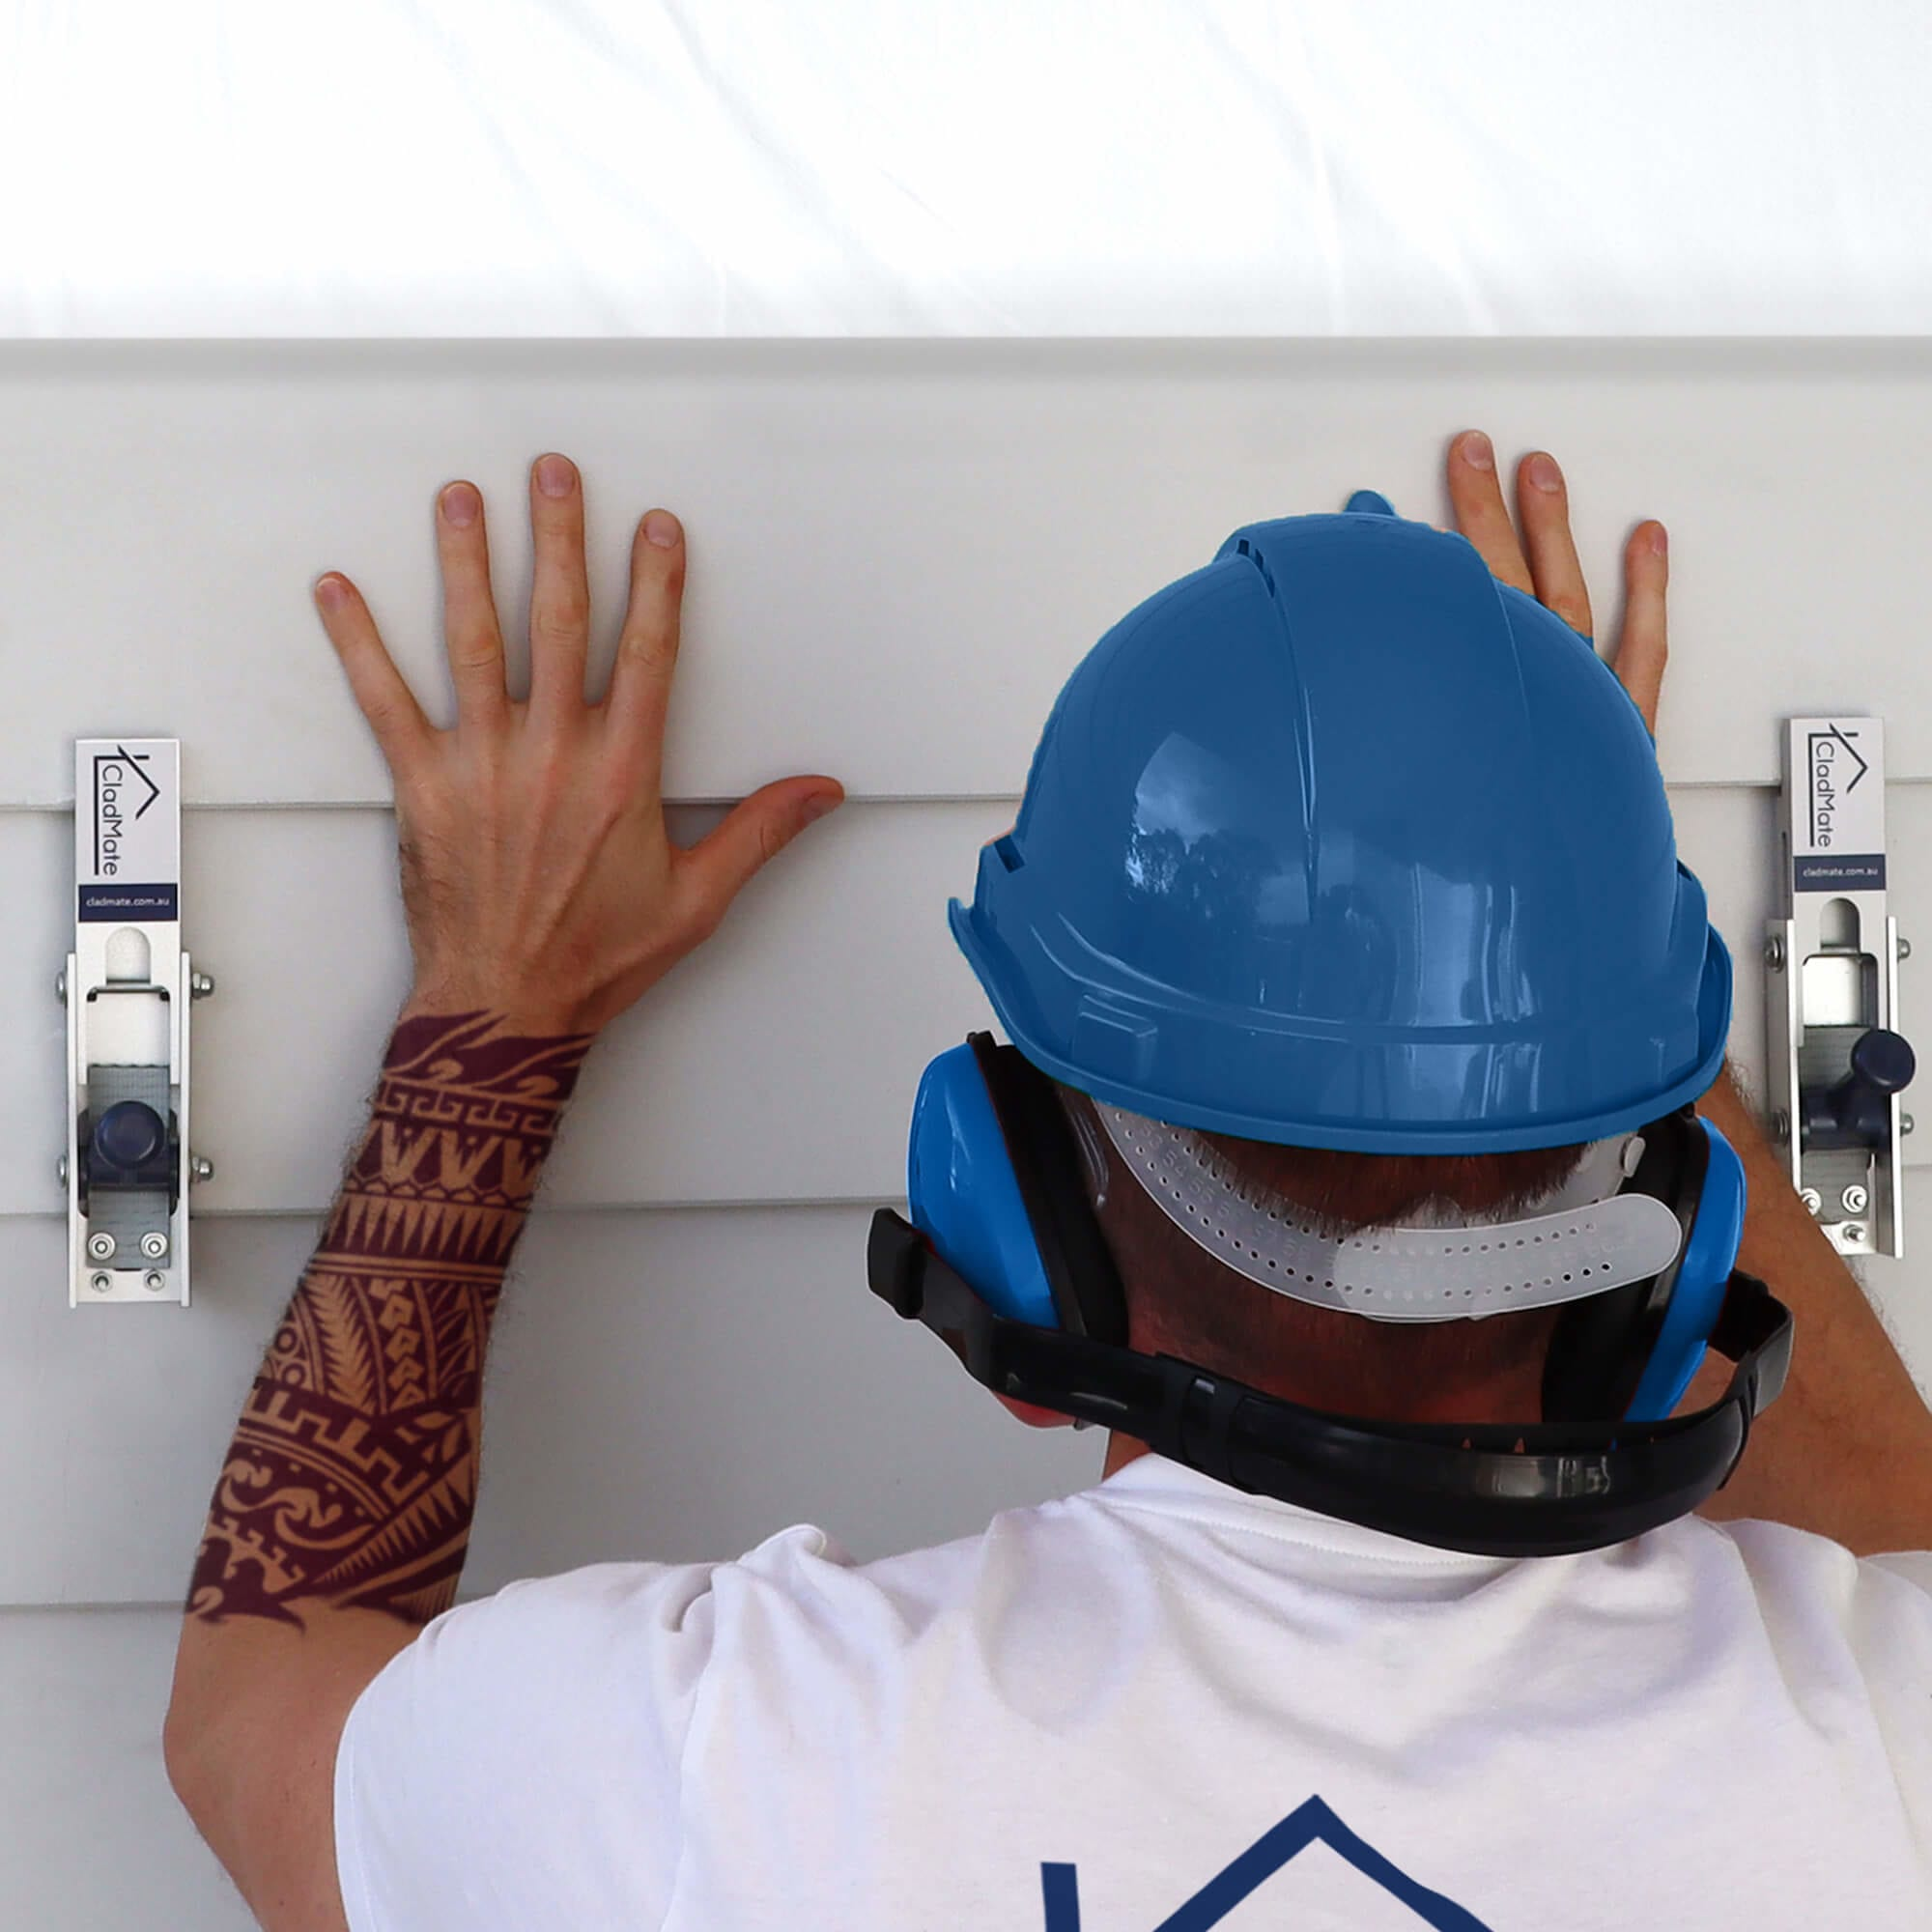 Carpenter Using CladMate Weatherboard Clamps